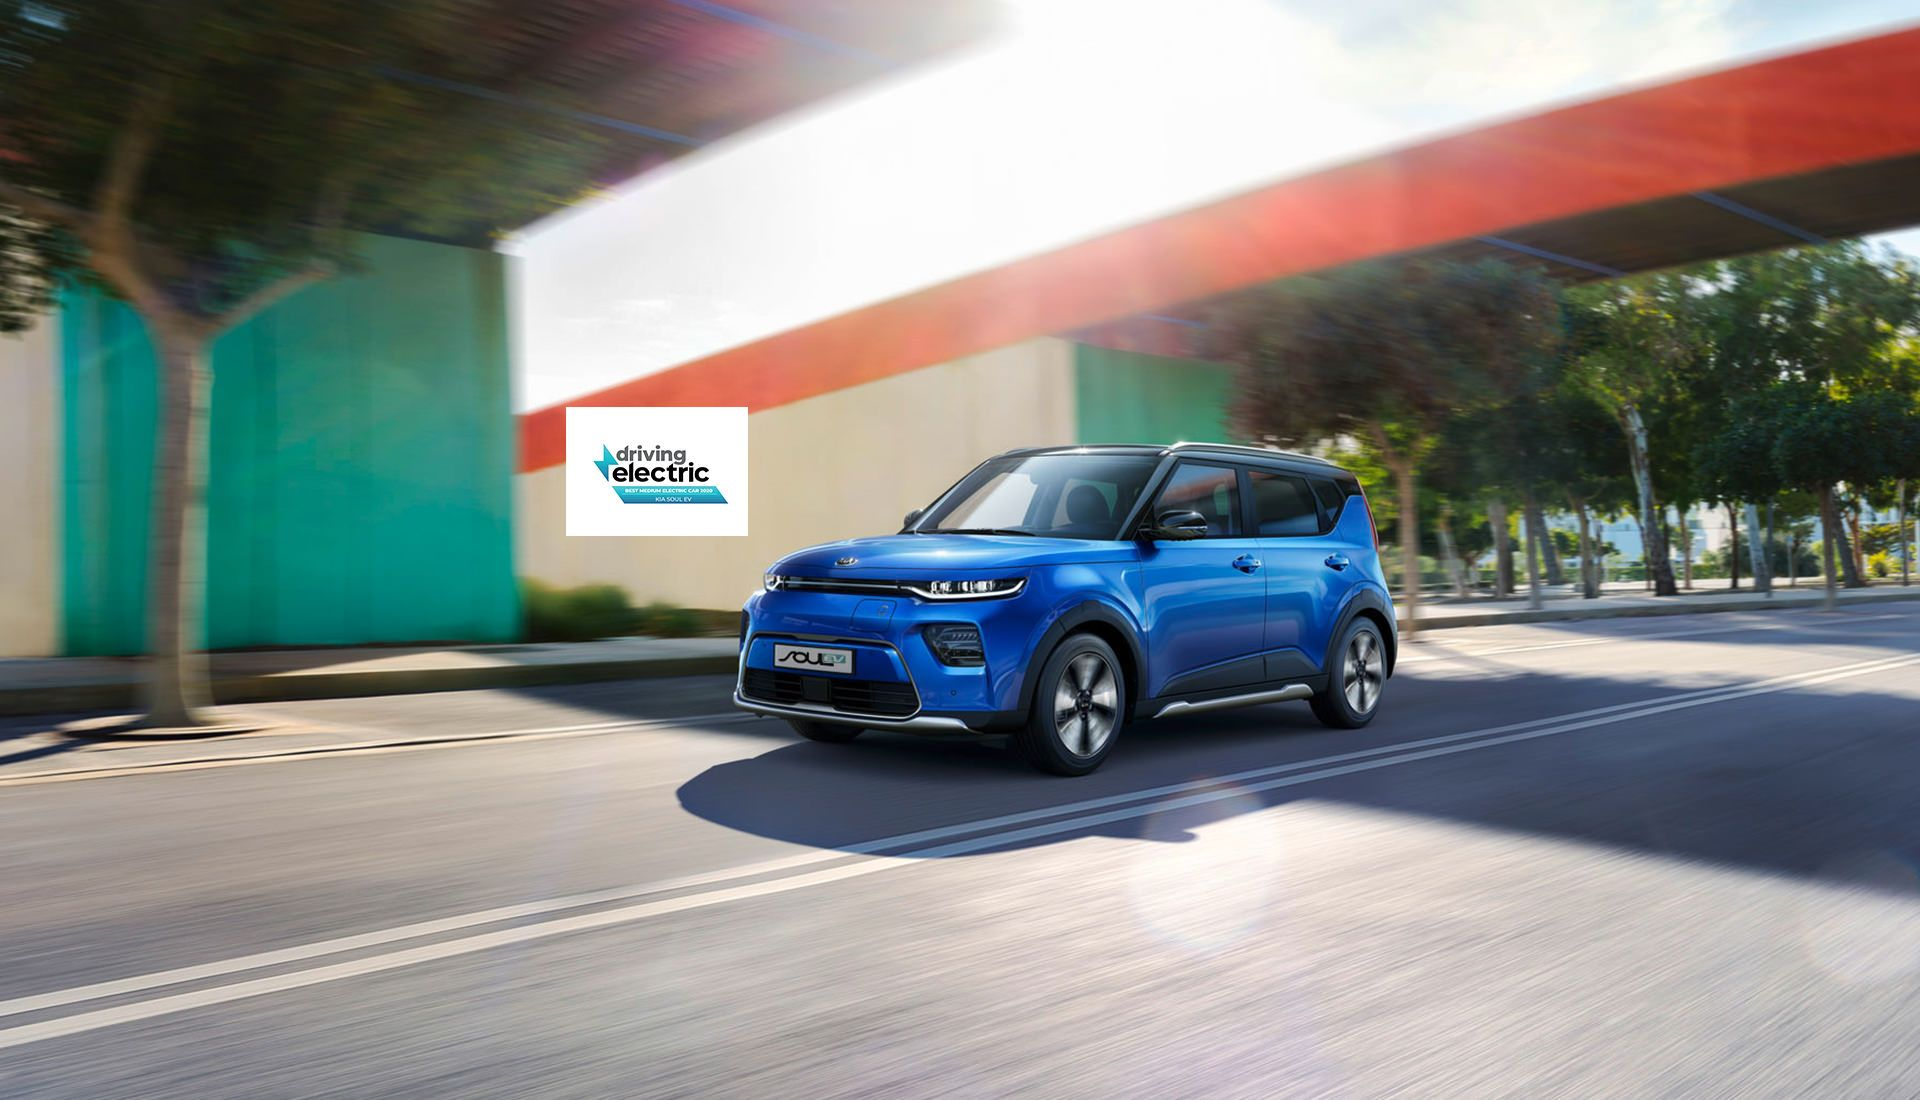 New Kia Soul EV in Plymouth, Devon